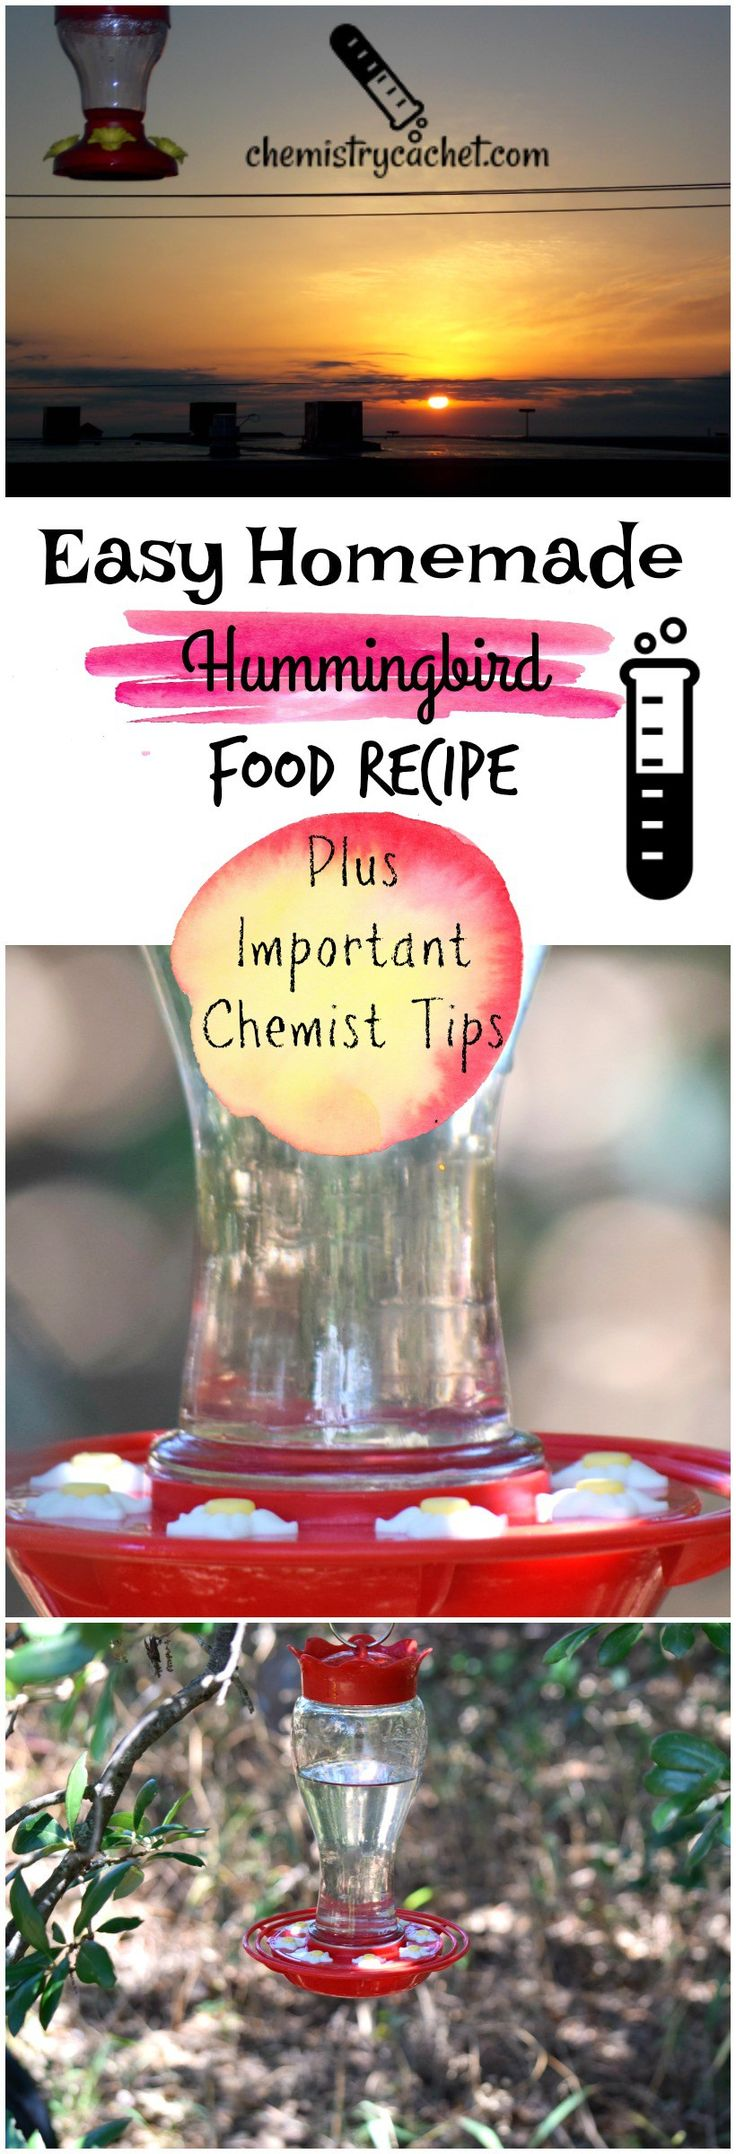 Easy Homemade Hummingbird Food Recipe plus chemist tips for keeping mold away, bees, and more on chemistrycachet.com